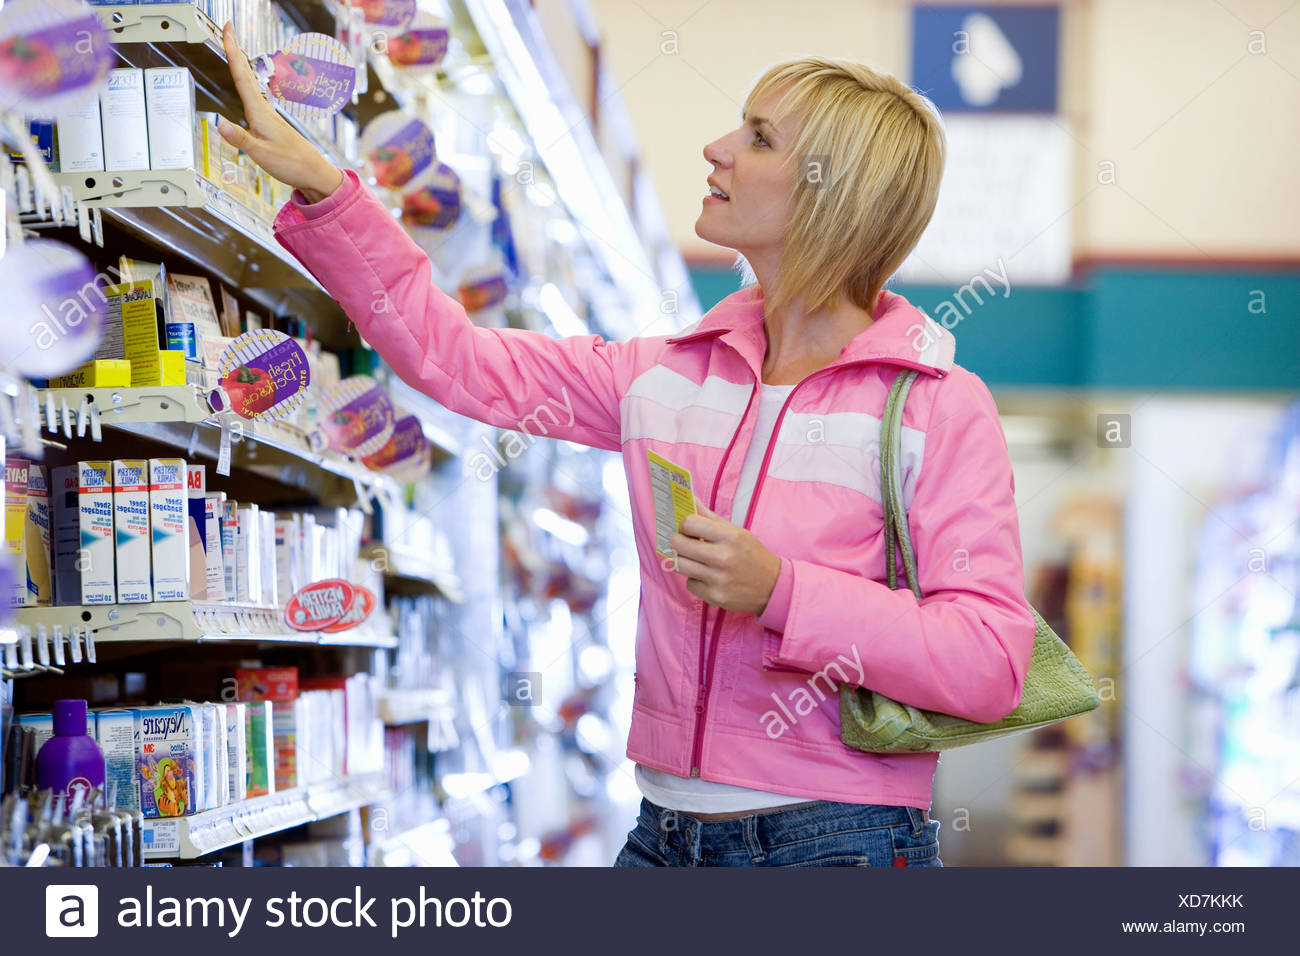 Woman shopping in supermarket choosing item from shelf side view - Stock Image